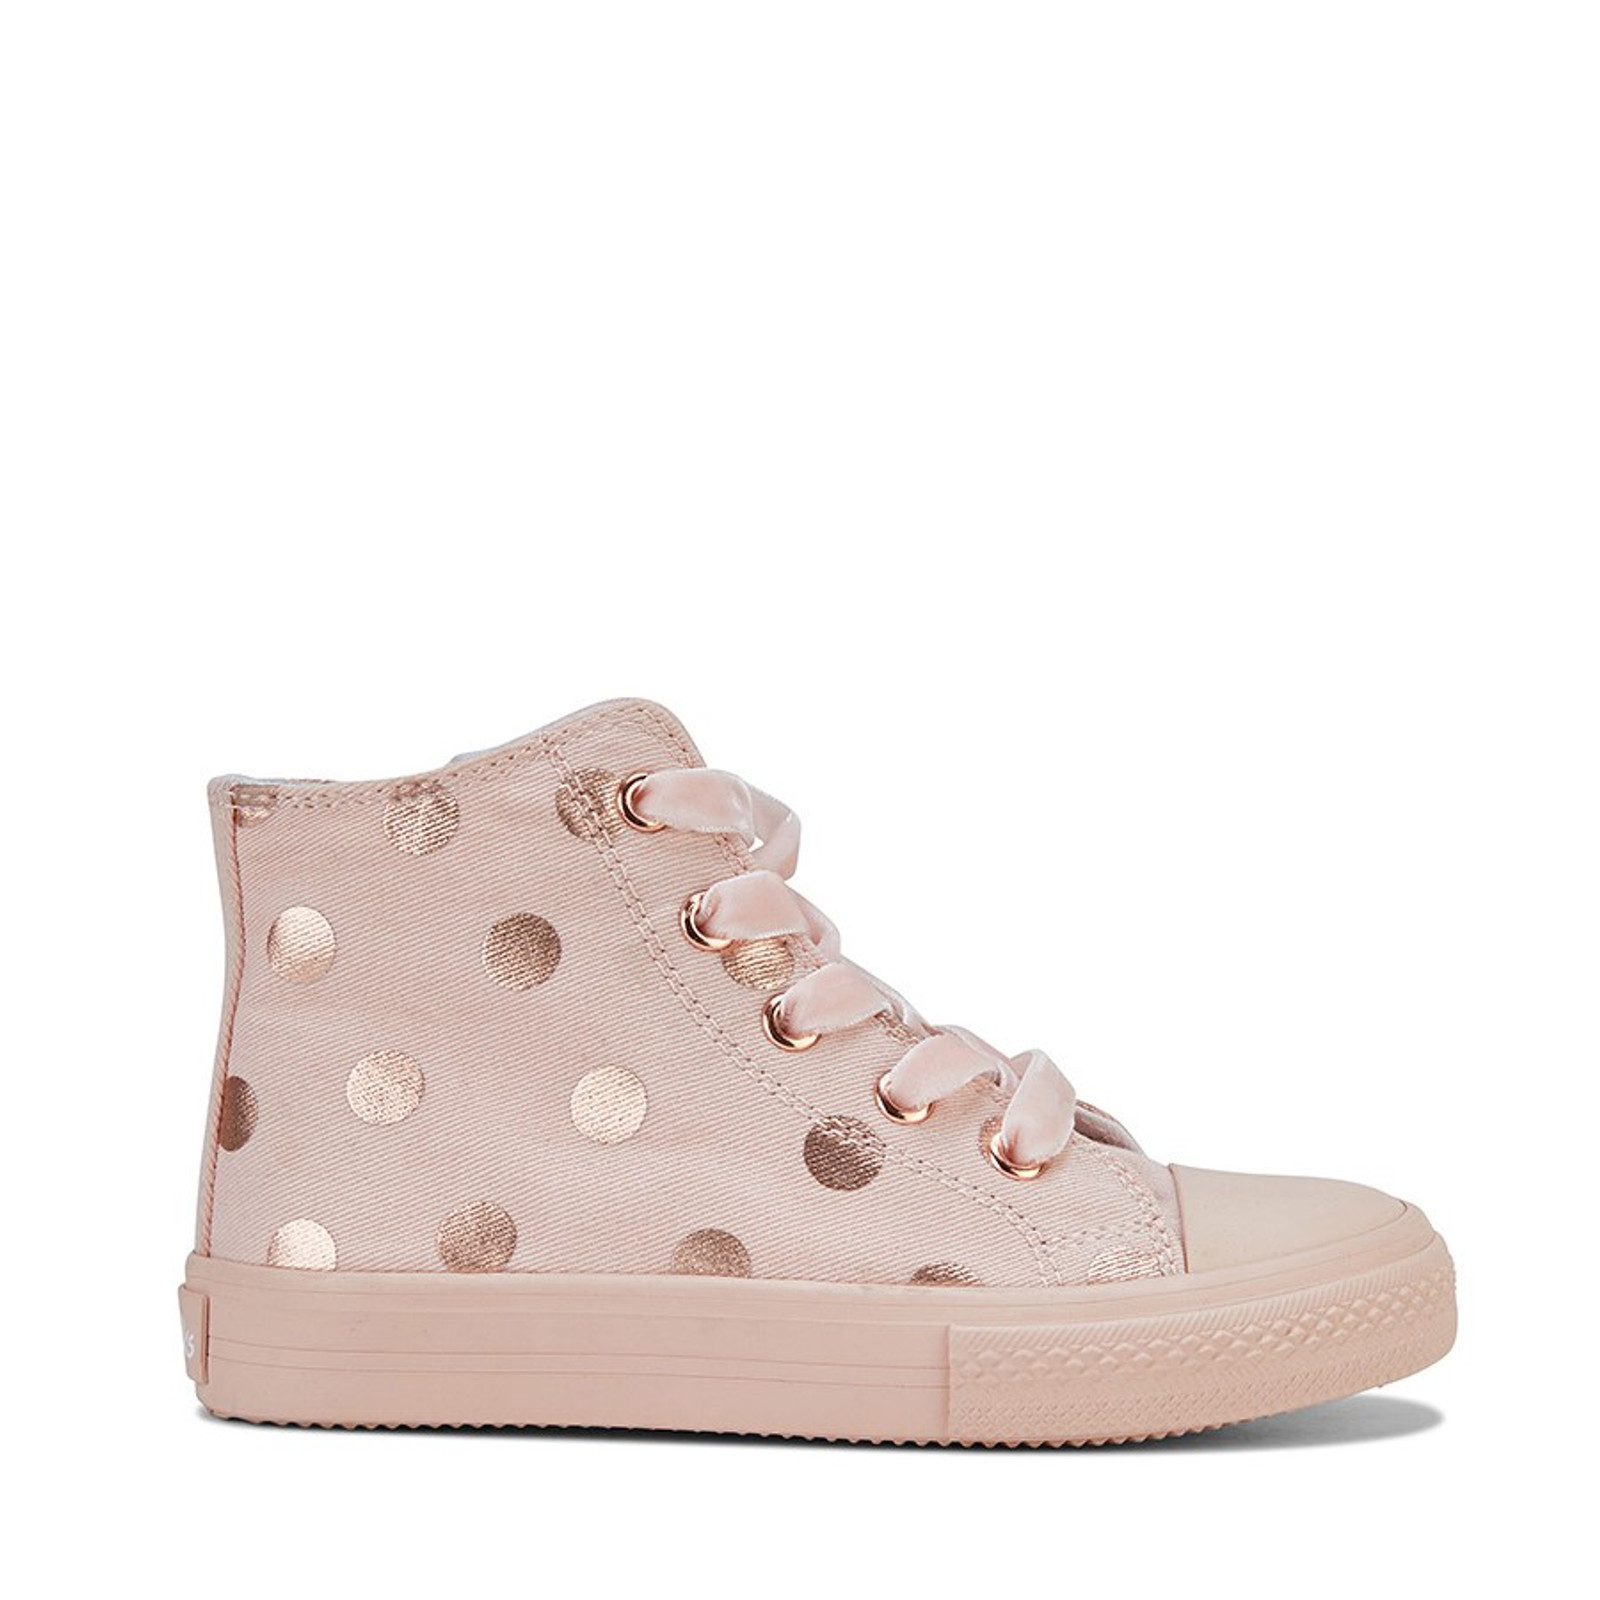 Clarks Girls LACEY Pink/Rose Gold